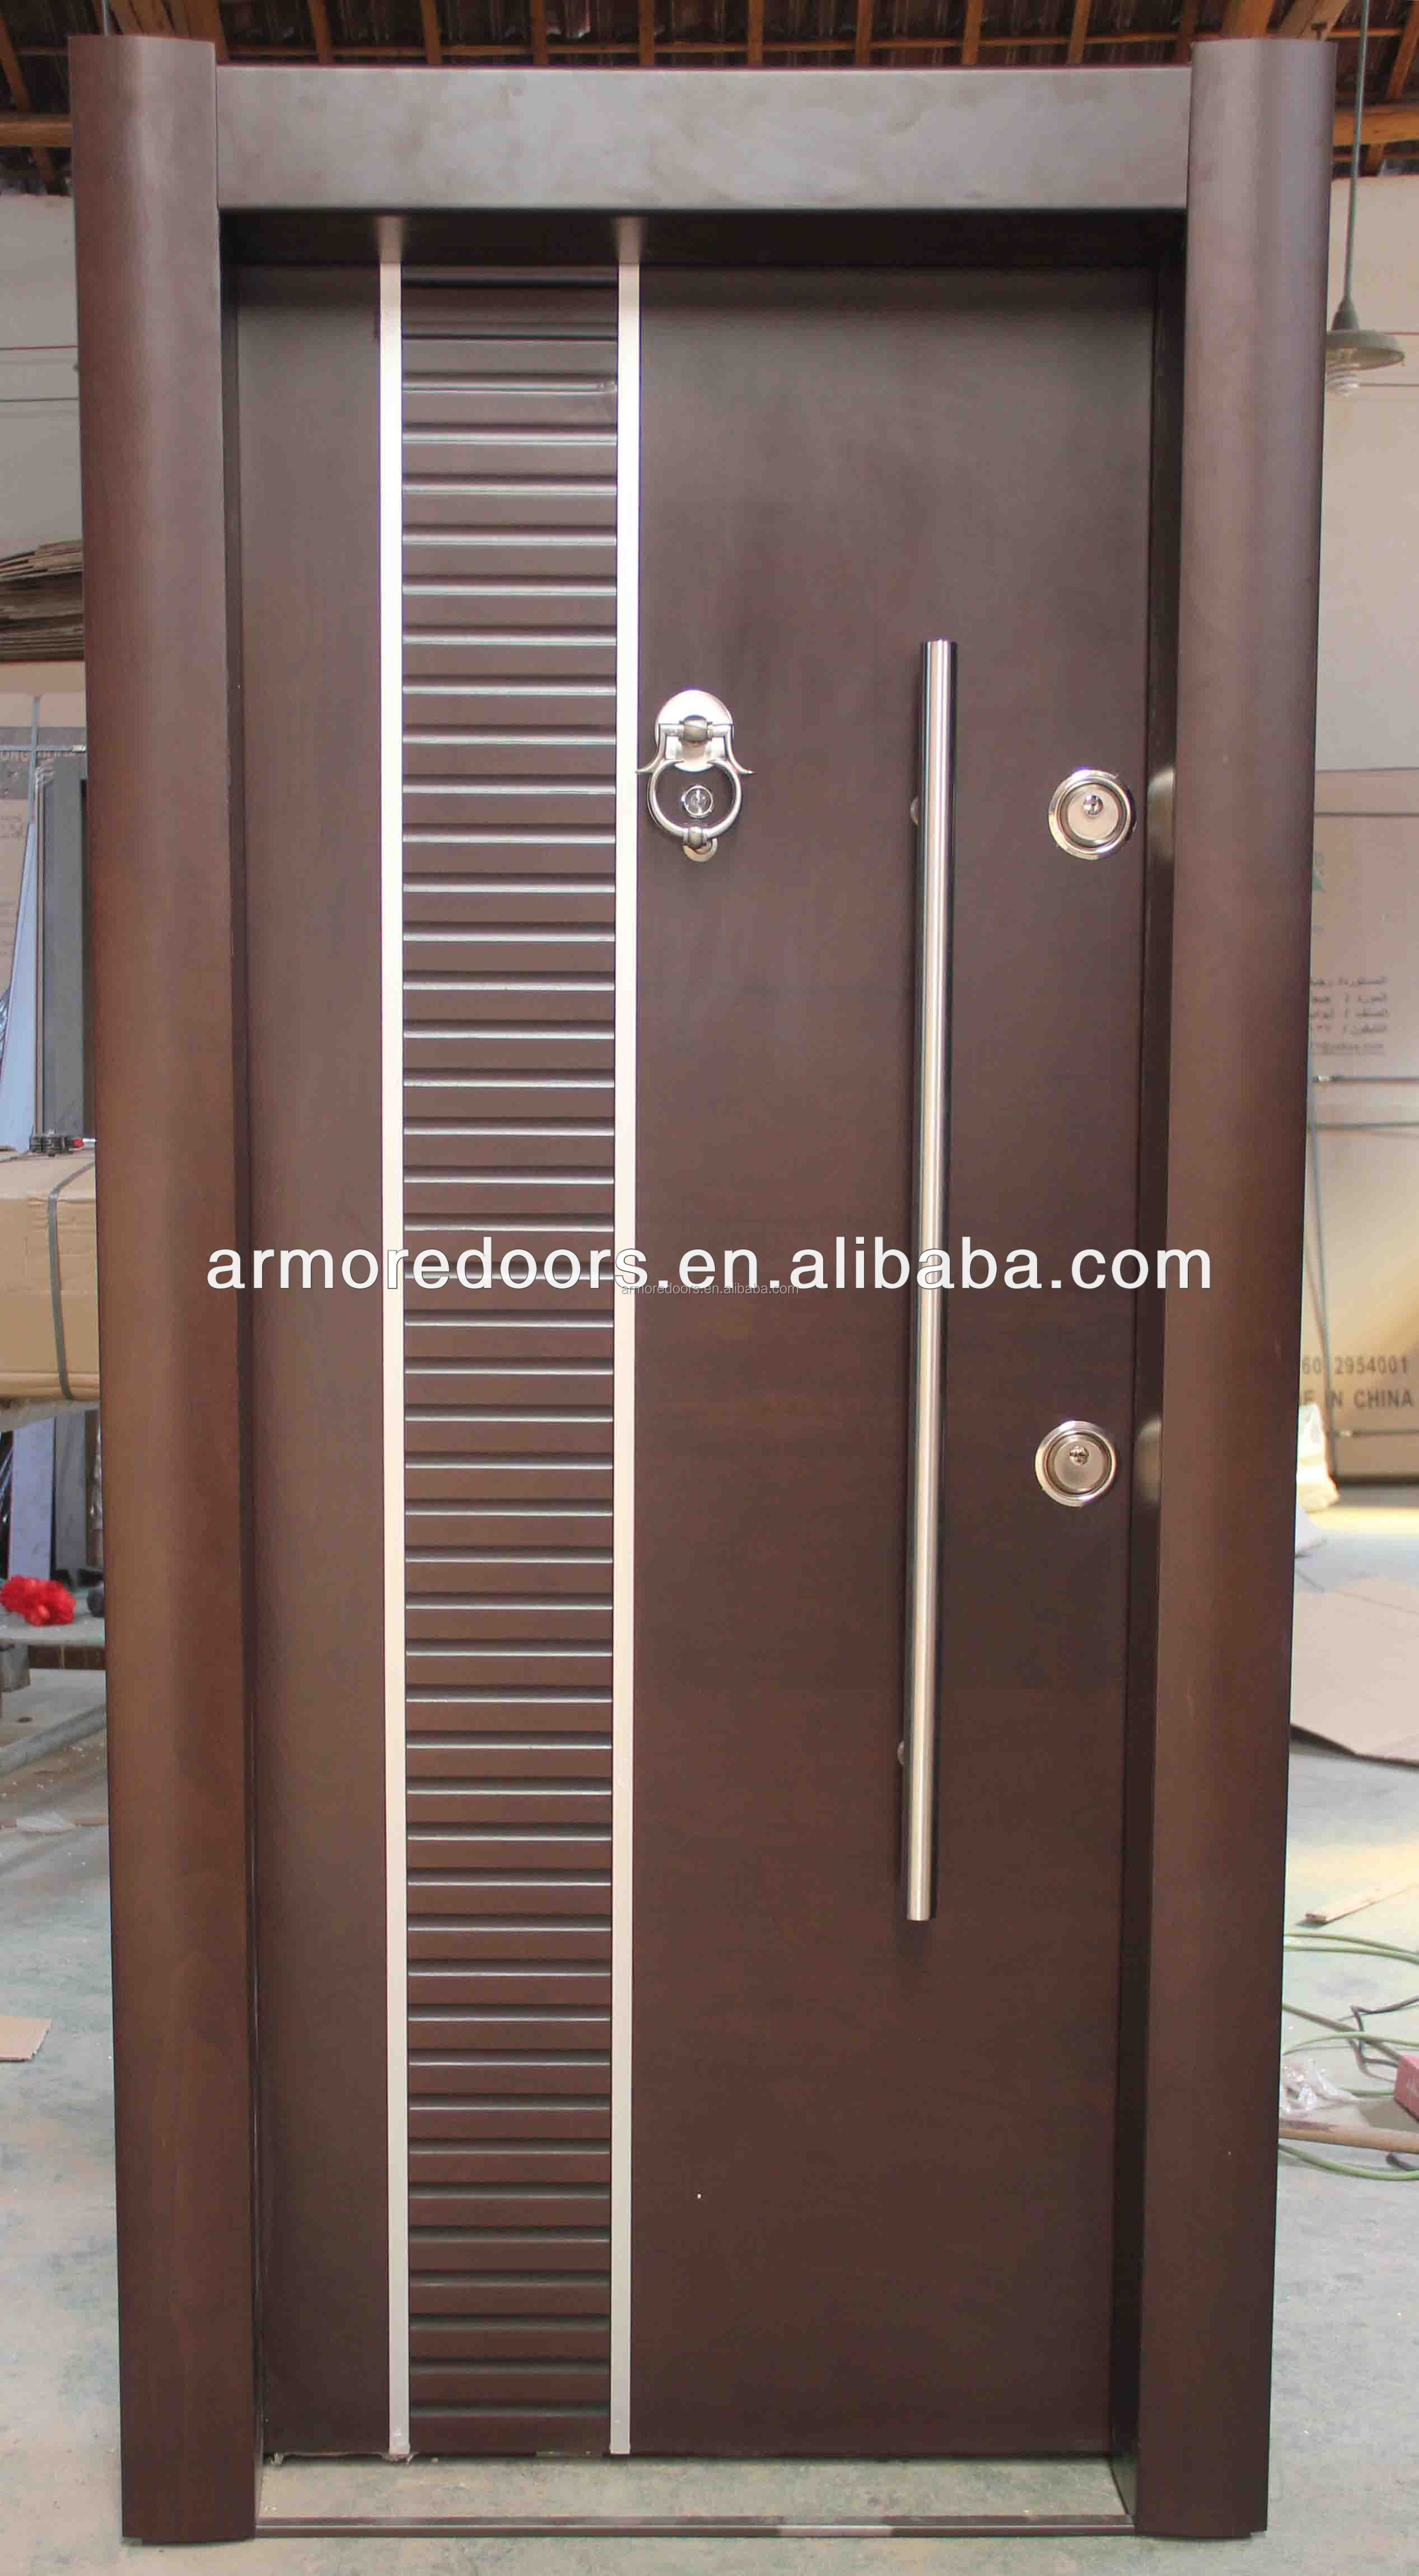 Armored door interior door swing metal armored for Door design video